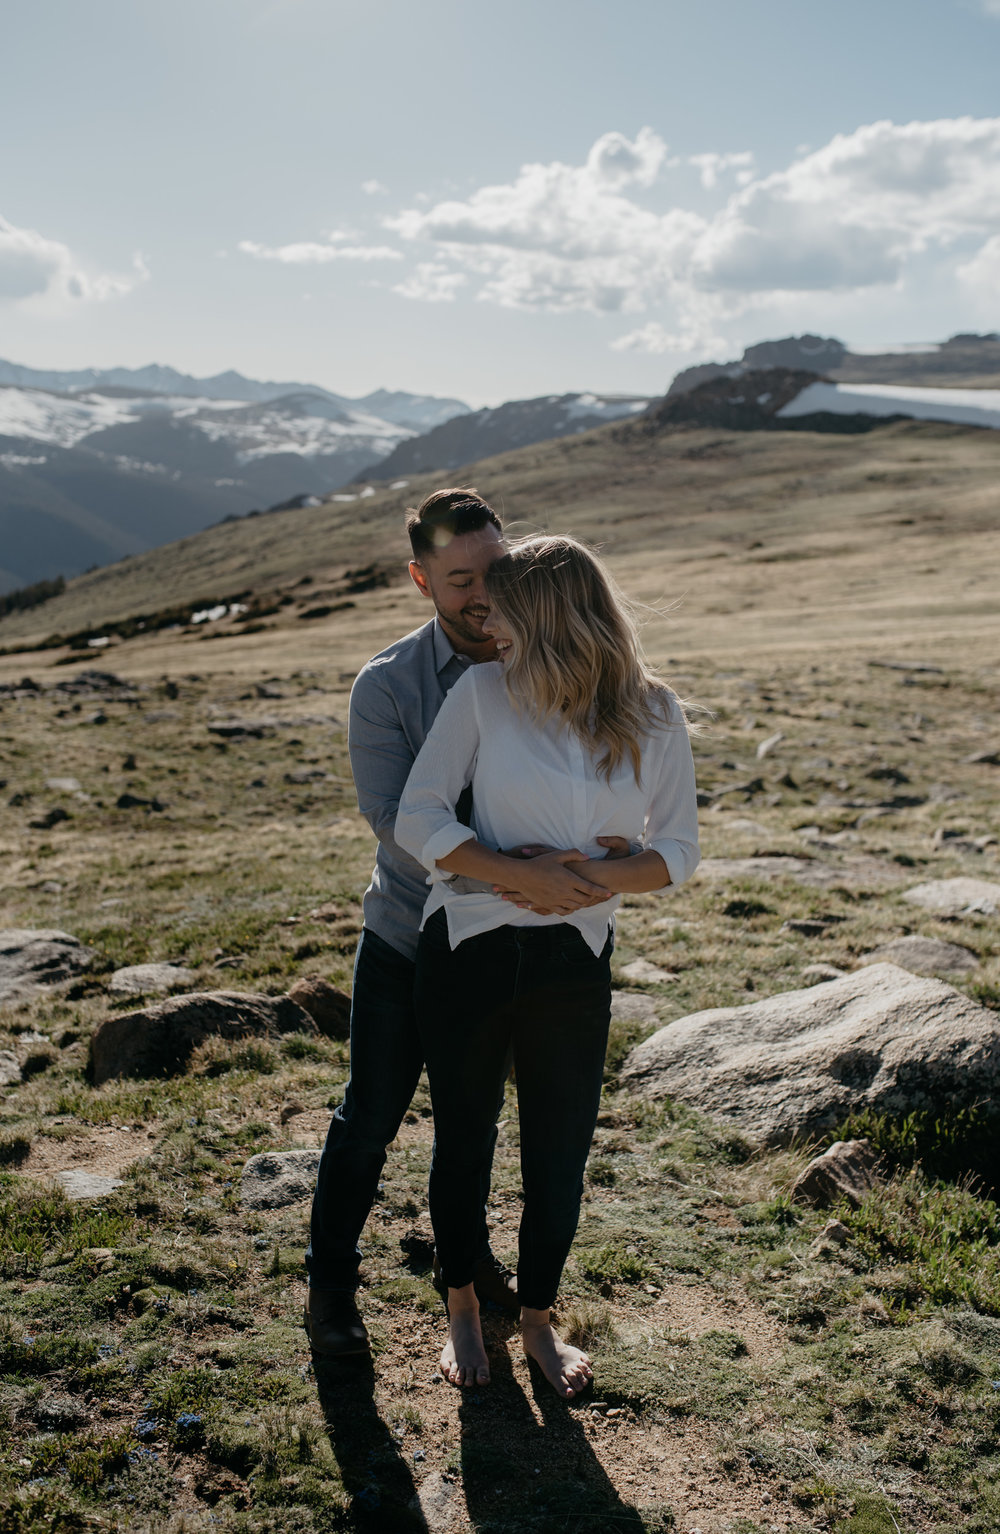 Colorado intimate wedding photographer. Mountain elopement in Colorado.